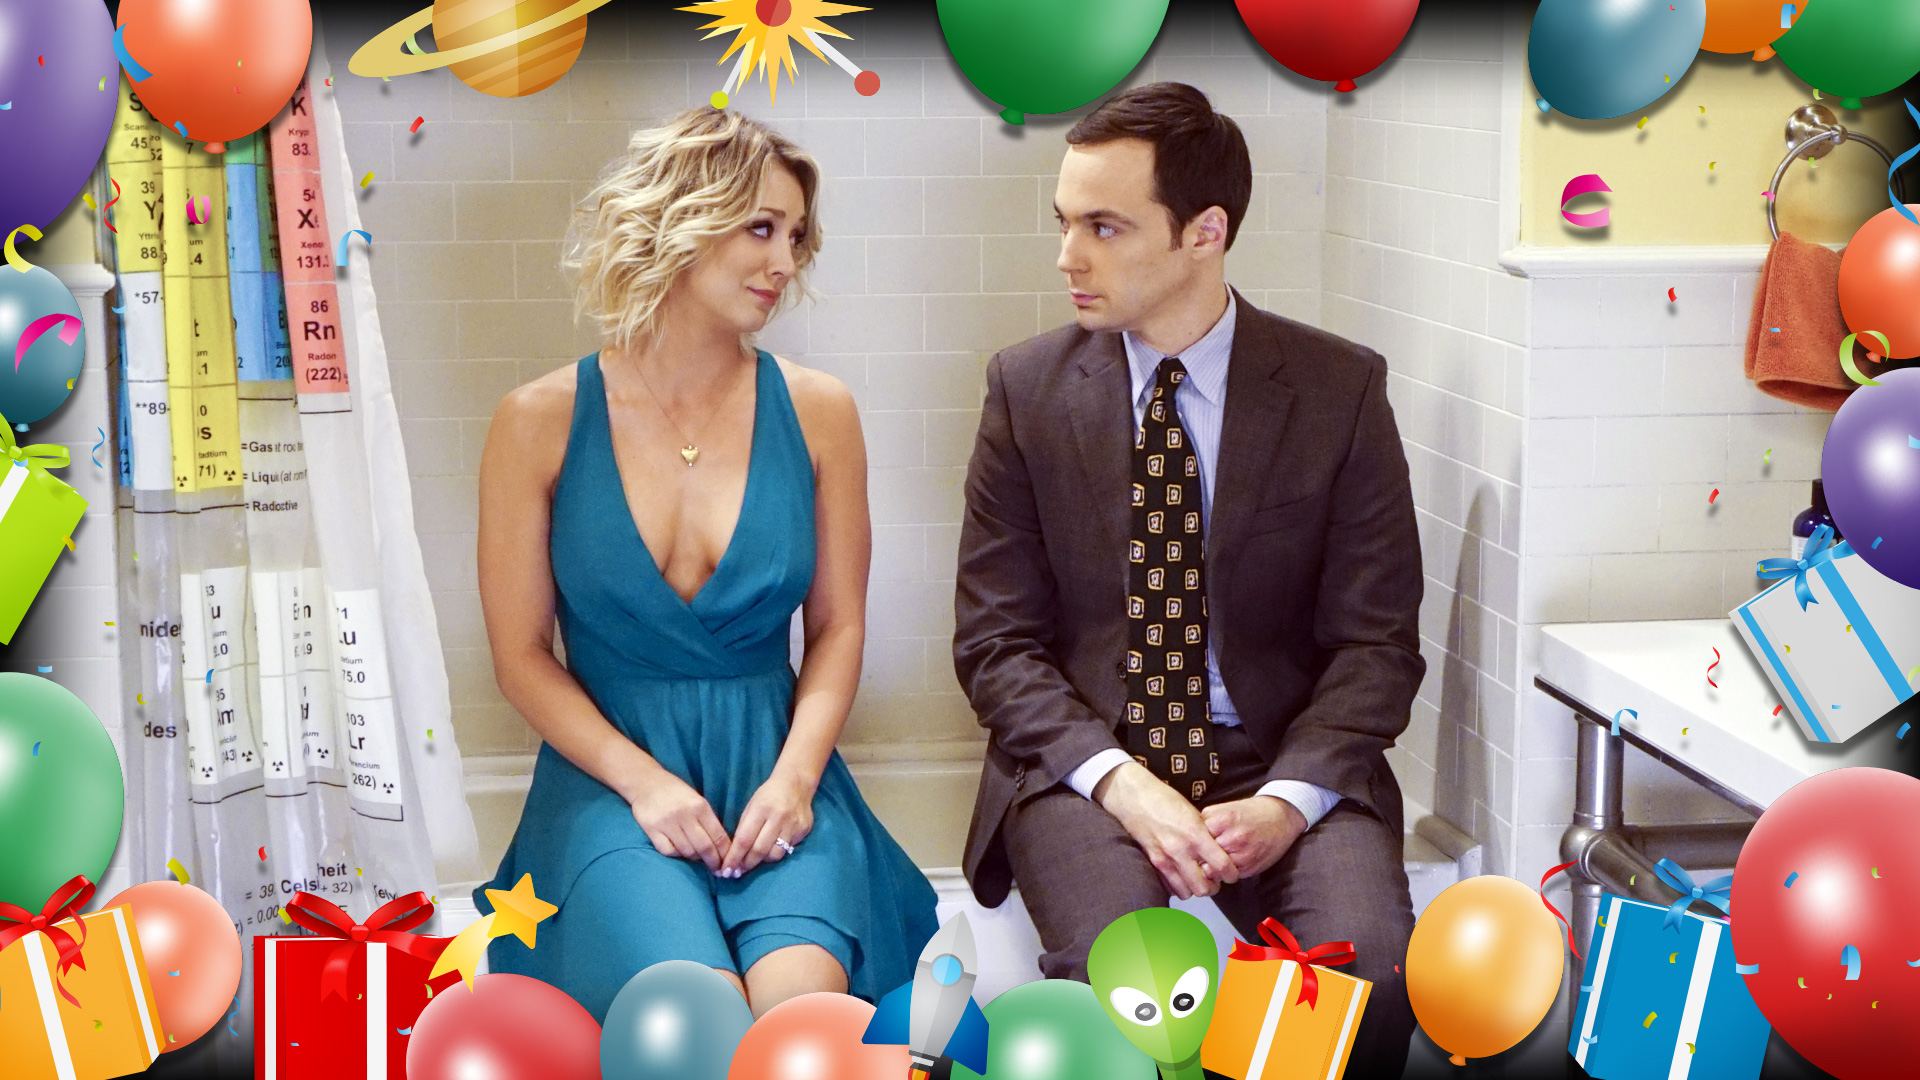 Penny comforts Sheldon in the bathroom.